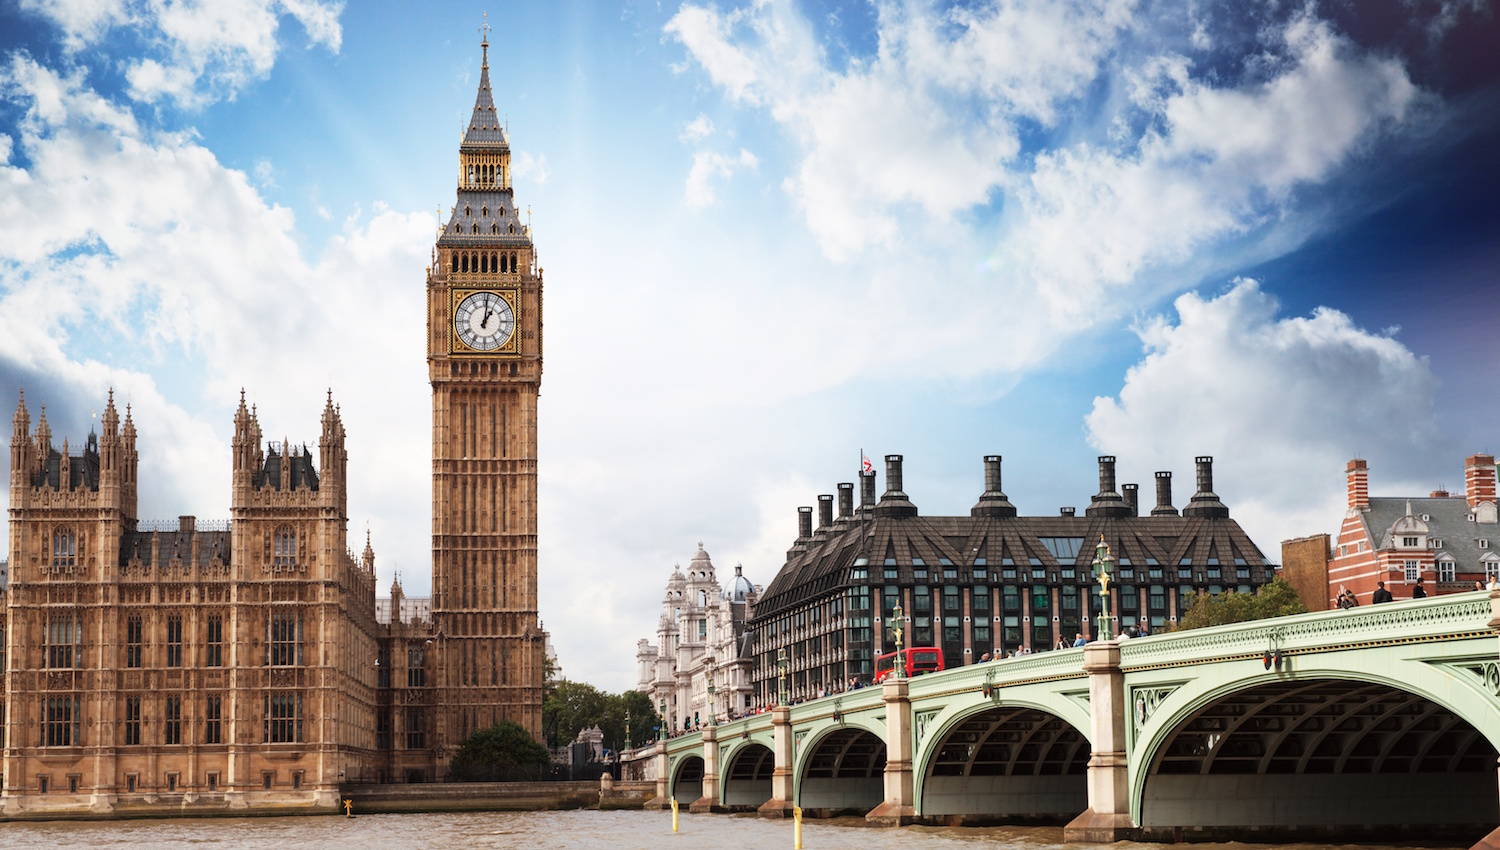 Big Ben London Travel Guide, How tall is Big Ben?